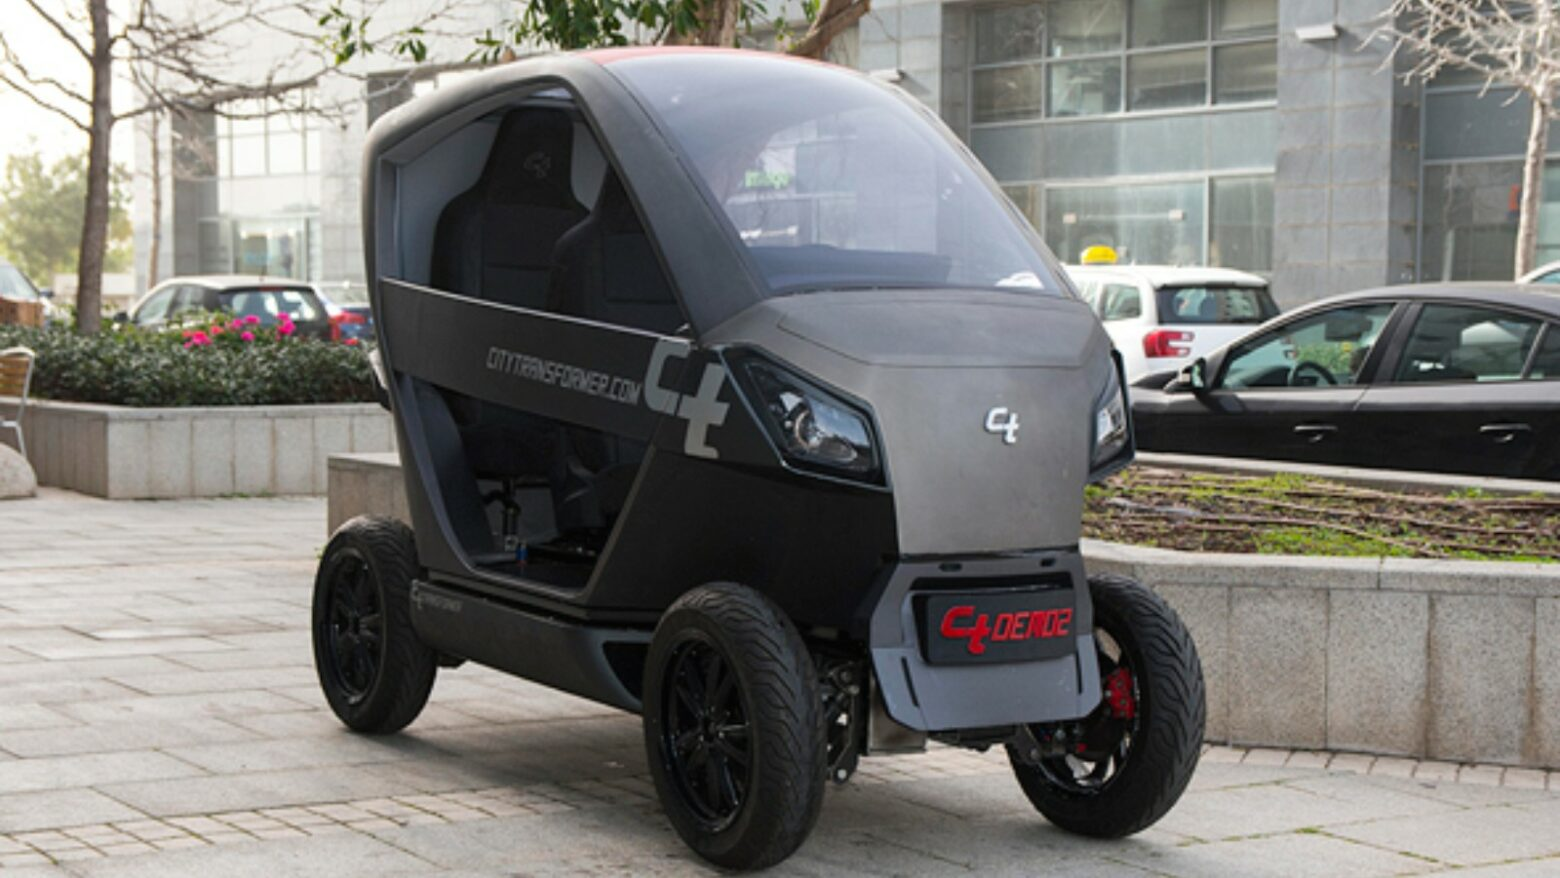 Prototype of the City Transformer folding electric car.